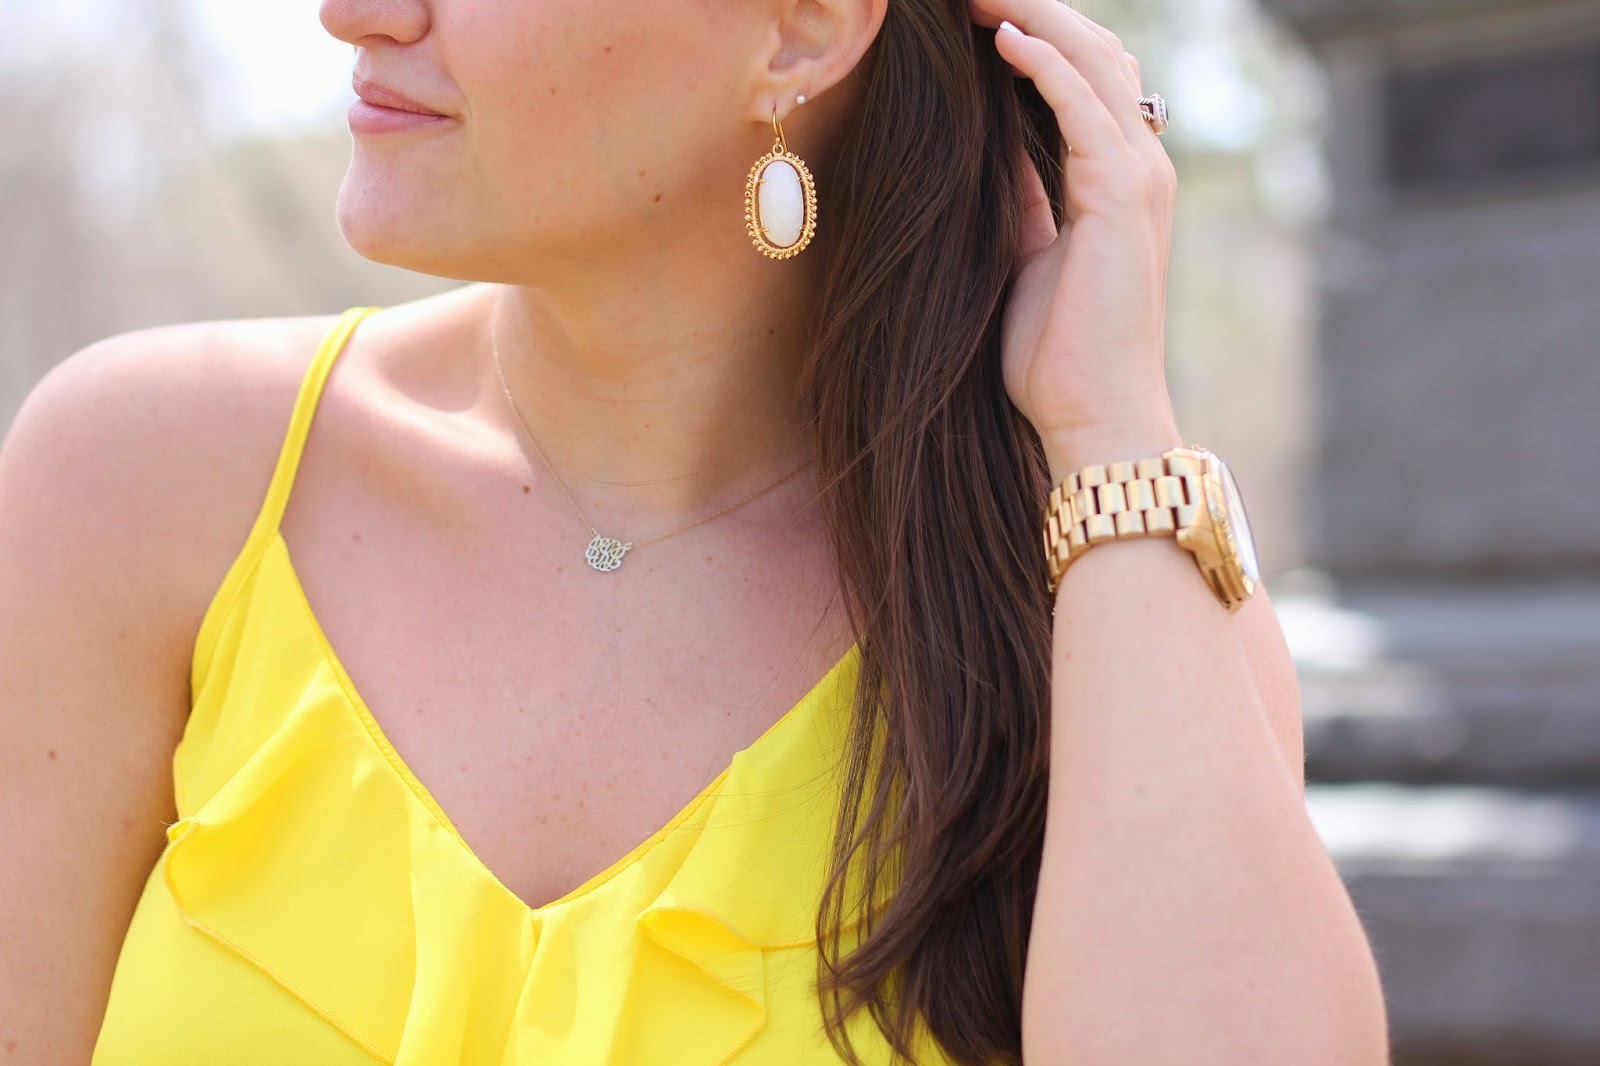 lisi lerch earrings, lisi learch, lisi learch blogger, lisi lerch jenny earrings